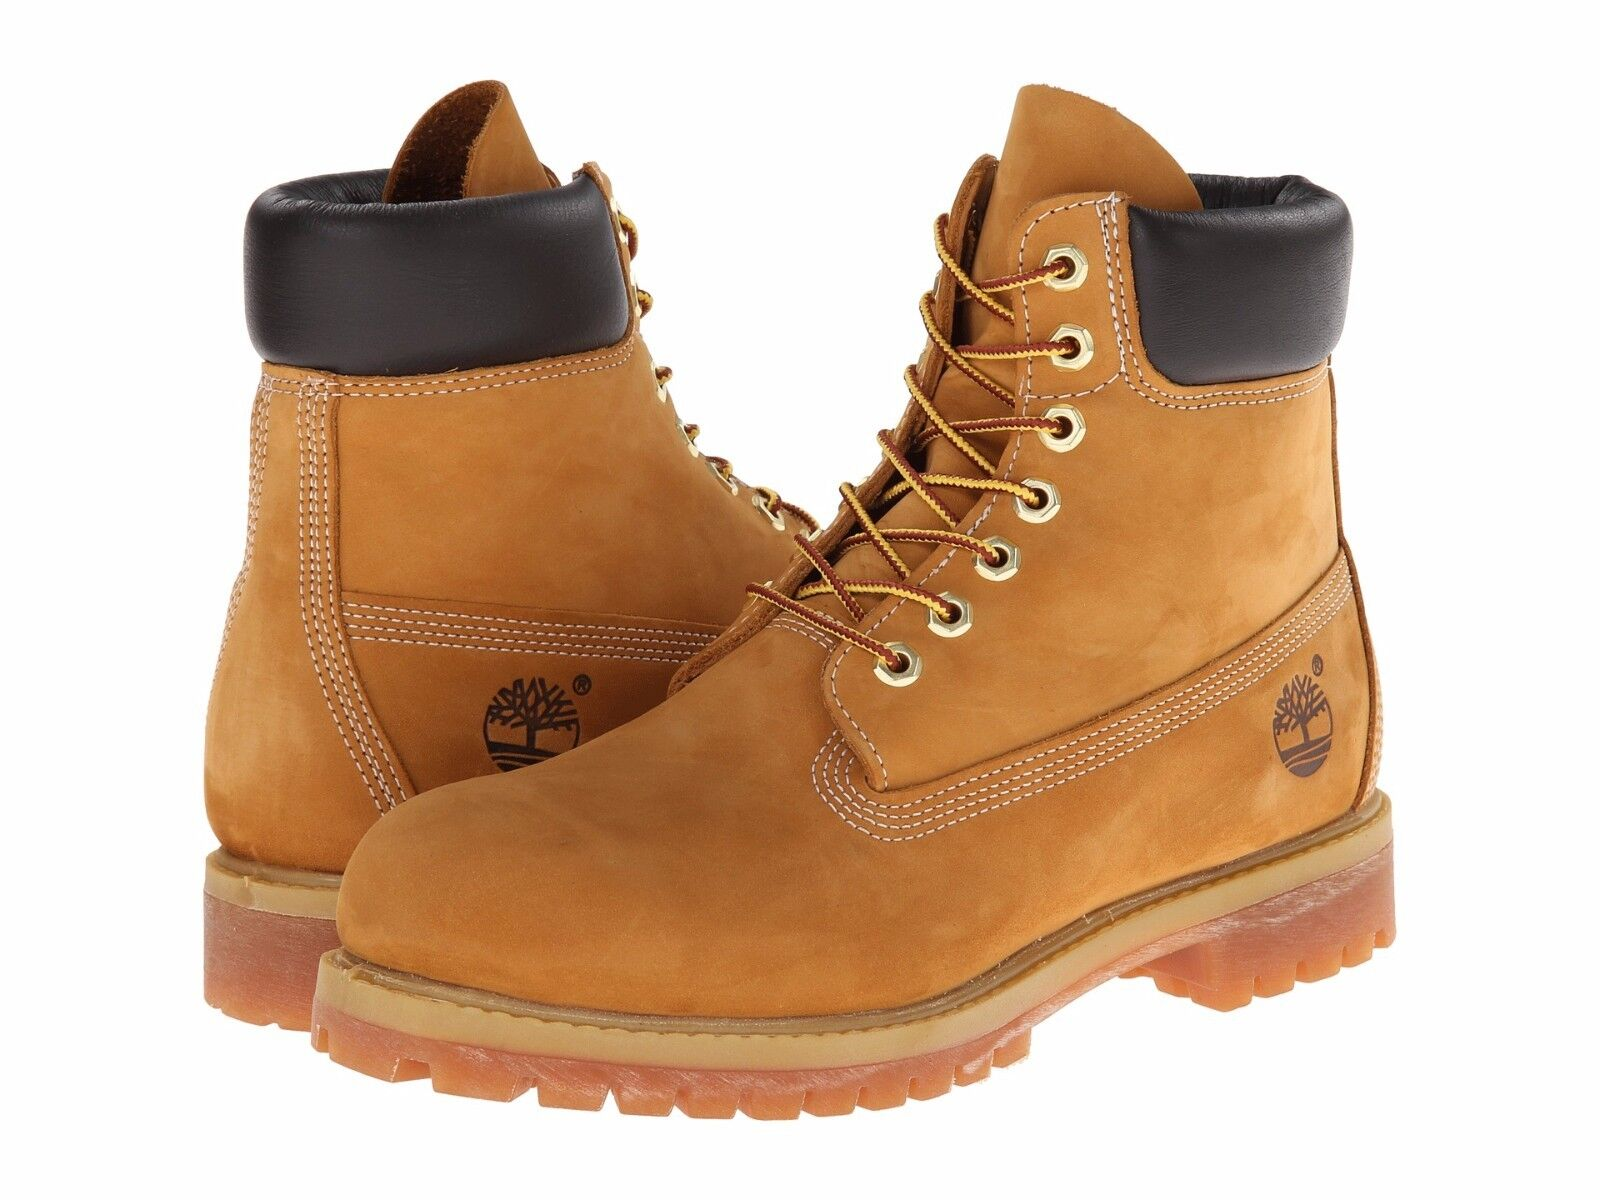 Boots - Men's Shoes Timberland 6 Inch Premium Waterproof Boots 10061 Wheat *New*